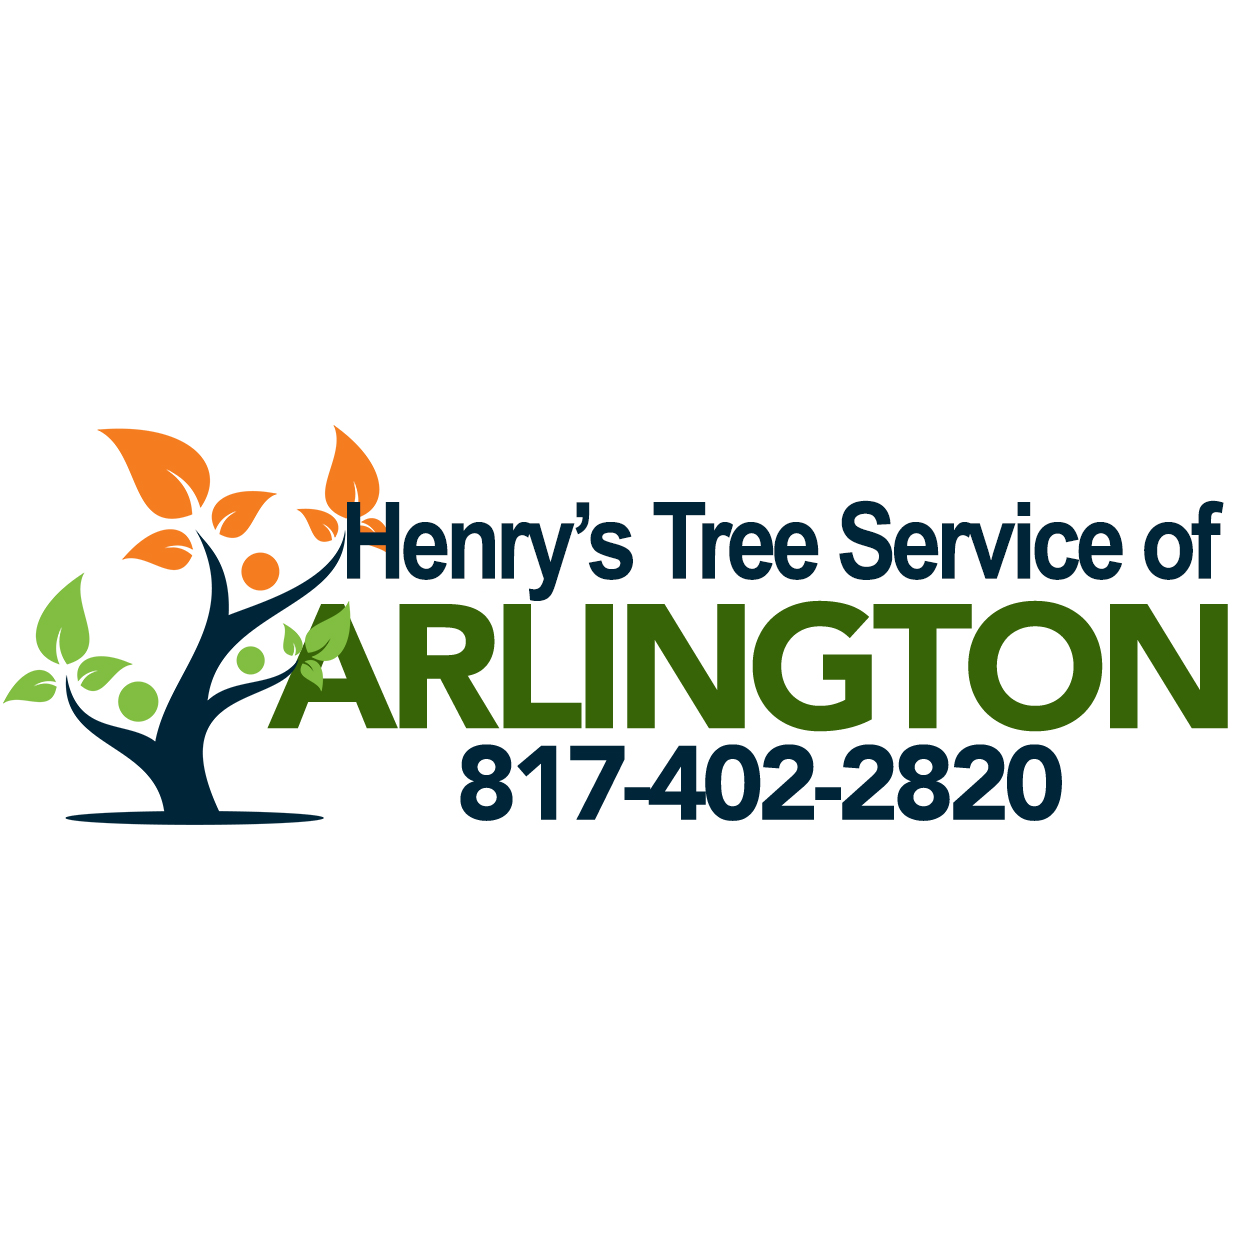 Henry's Tree Service of Arlington